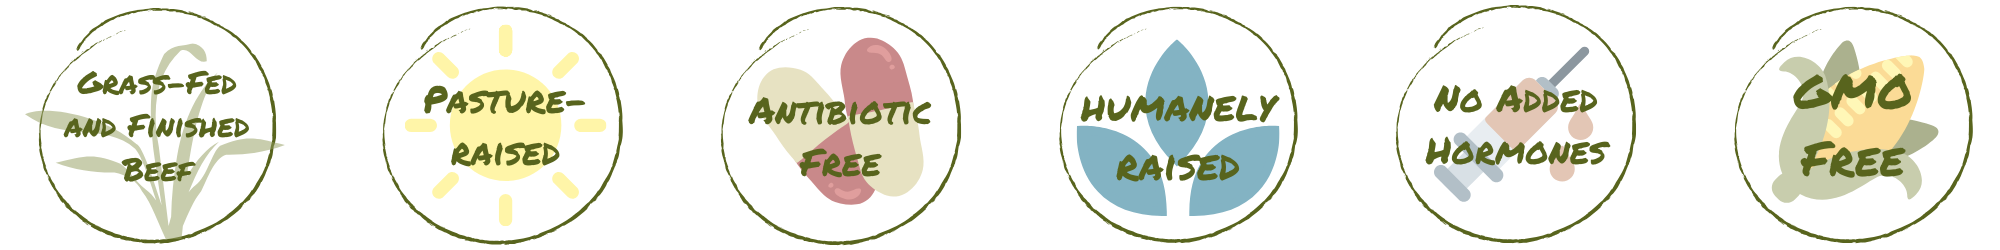 Icons with text: grass-fed and finished beef, pasture-raised, humanely raised, antibiotic free, no added hormones, and non-gmo